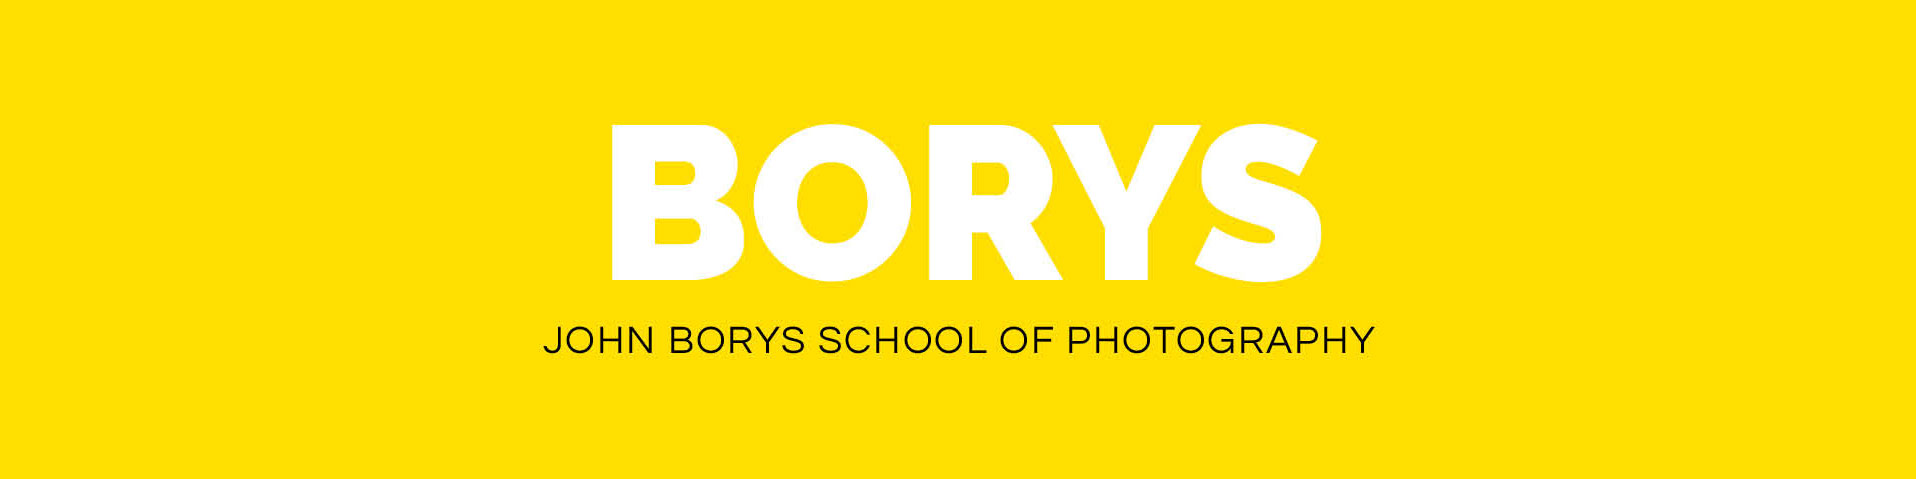 SCHOOL OF PHOTOGRAPHY FINAL